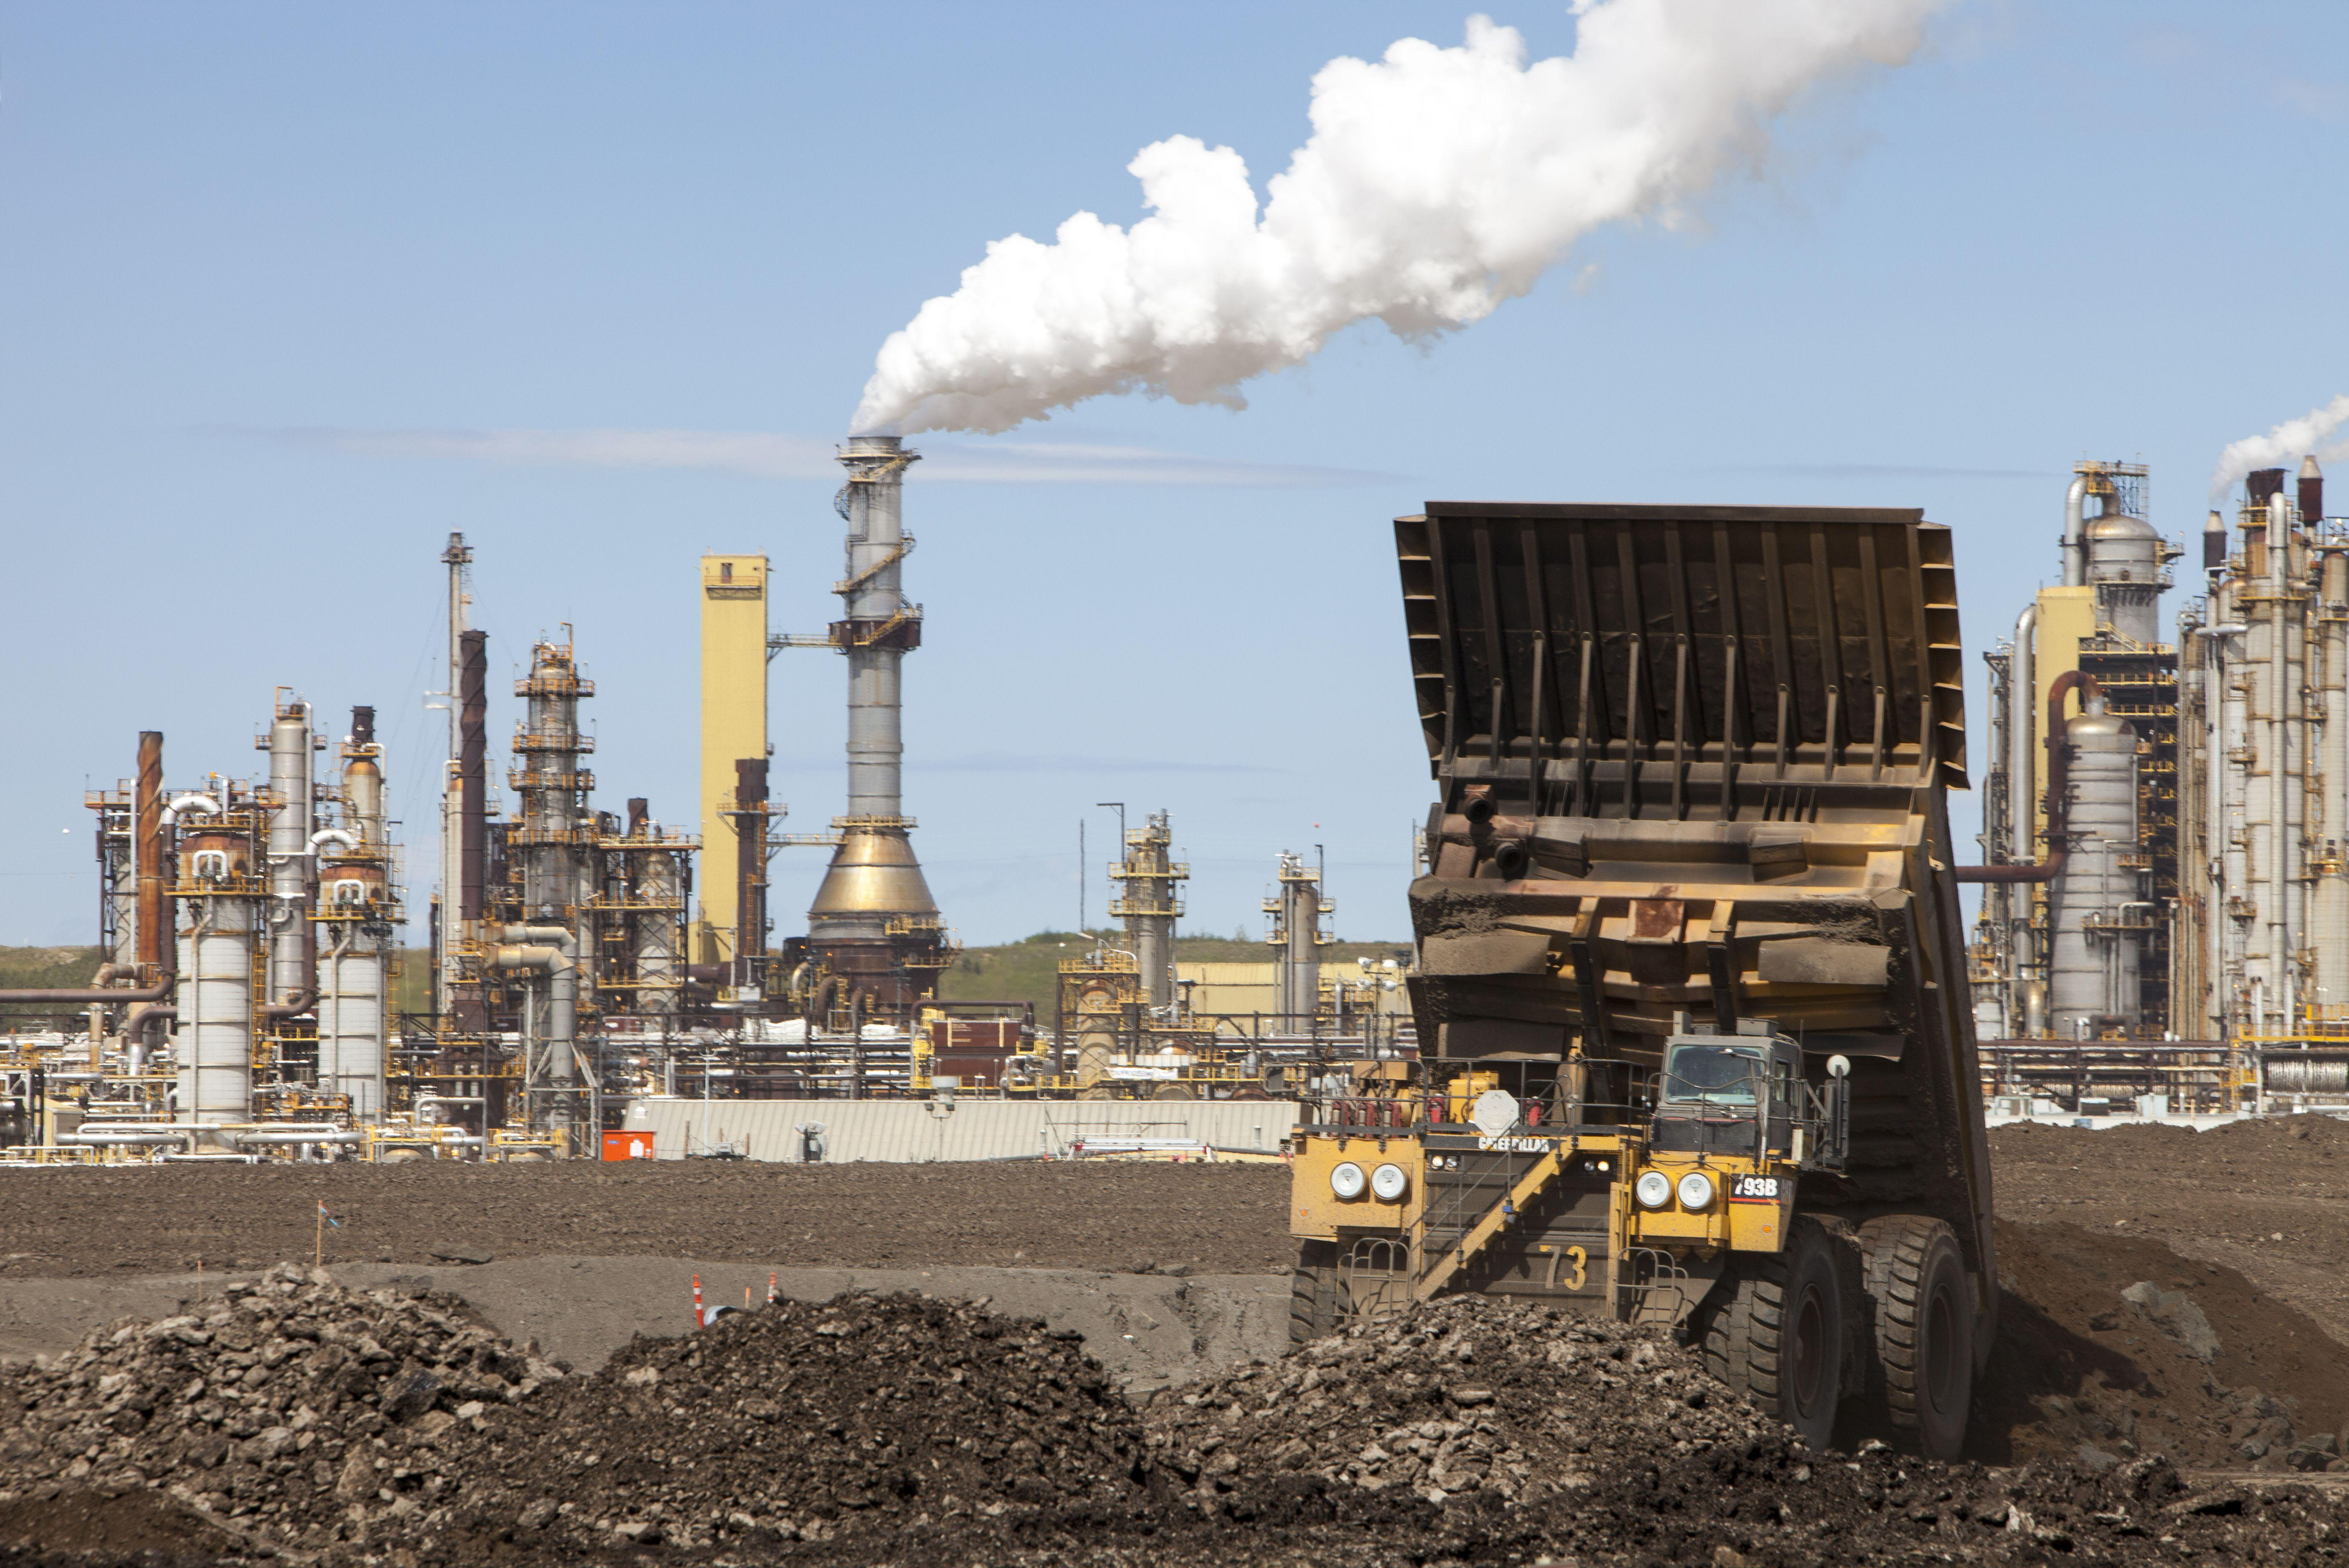 Resource extraction responsible for half world's carbon emissions